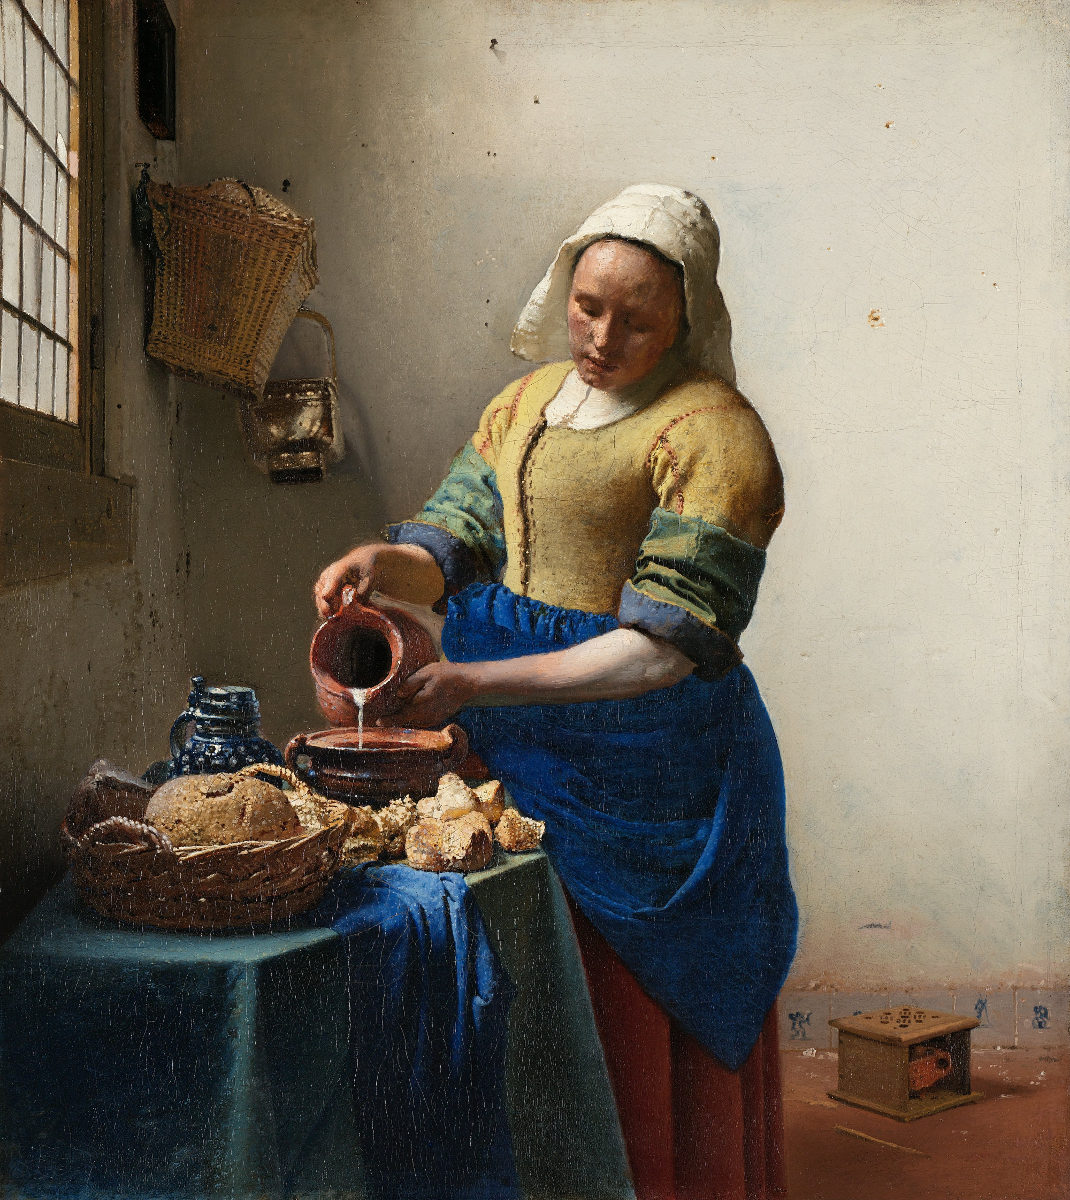 La lattaia di Jan Vermeer - ADO Analisi dell'opera